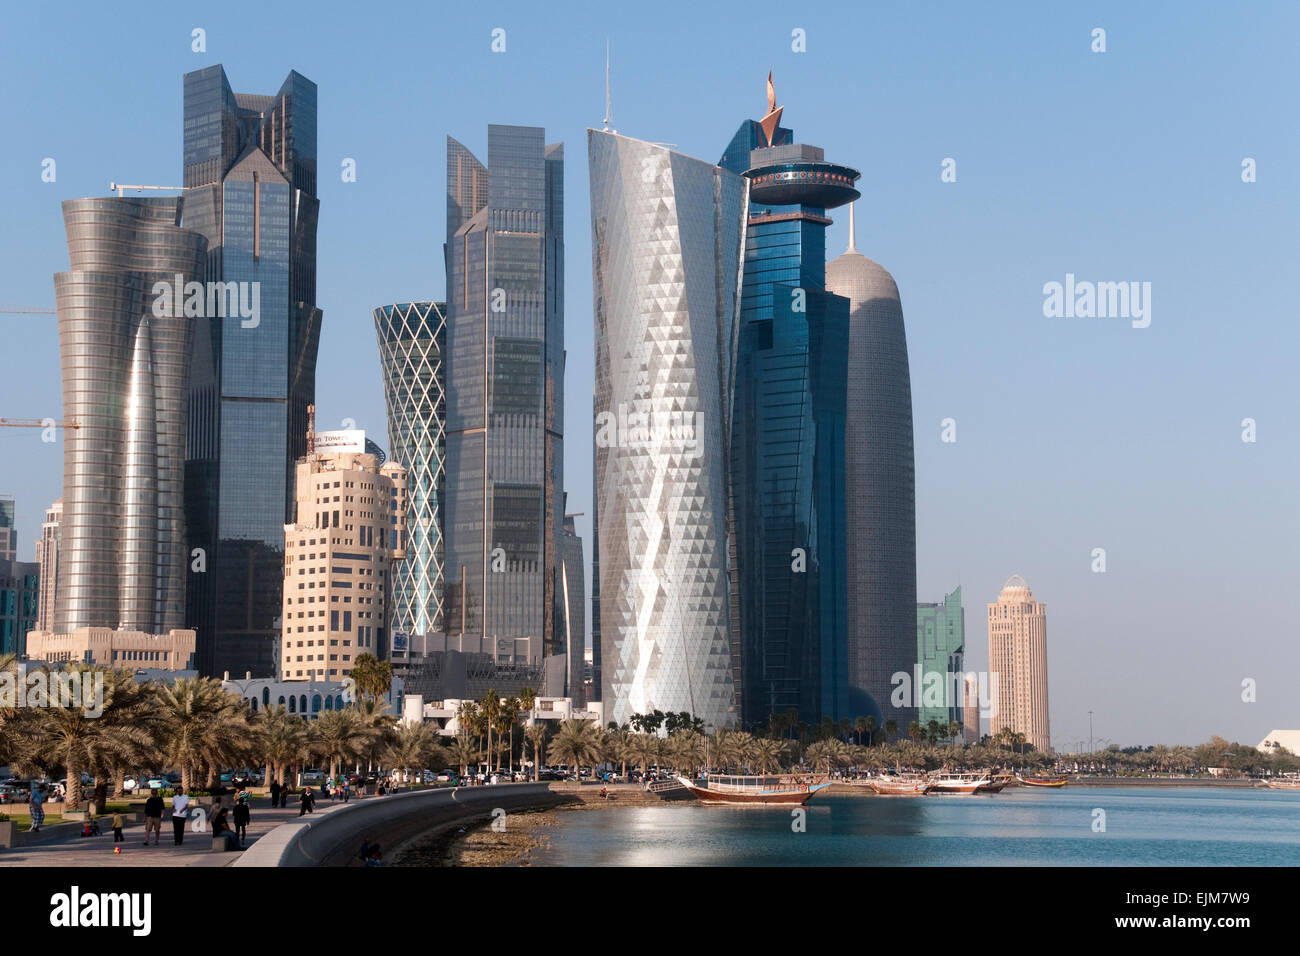 Pedestrians walk the waterfront corniche, below skyscrapers, in the city of Doha in the gulf state of Qatar. Stock Photo